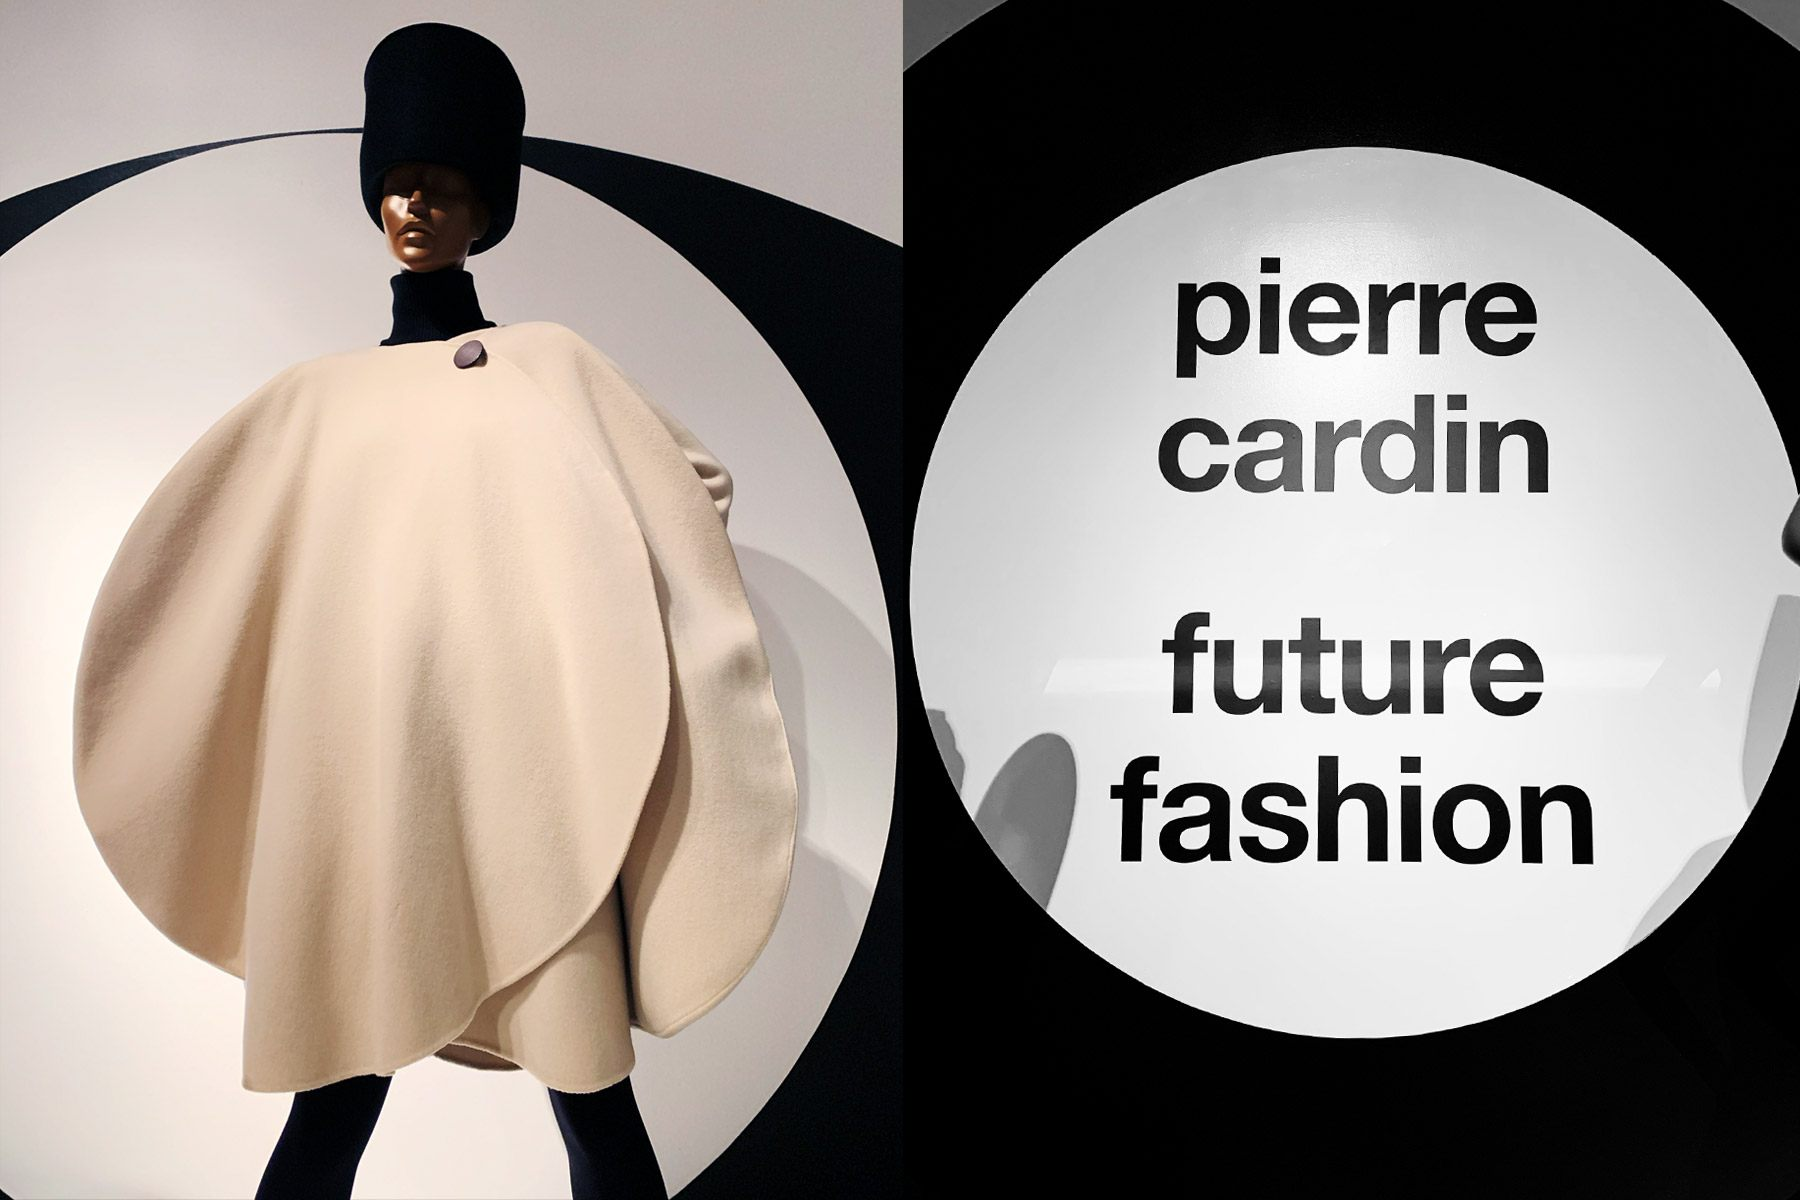 Future Fashion: Pierre Cardin exhibit at the Brooklyn Museum. Photographed by Alexander Thompson for Ponyboy magazine.